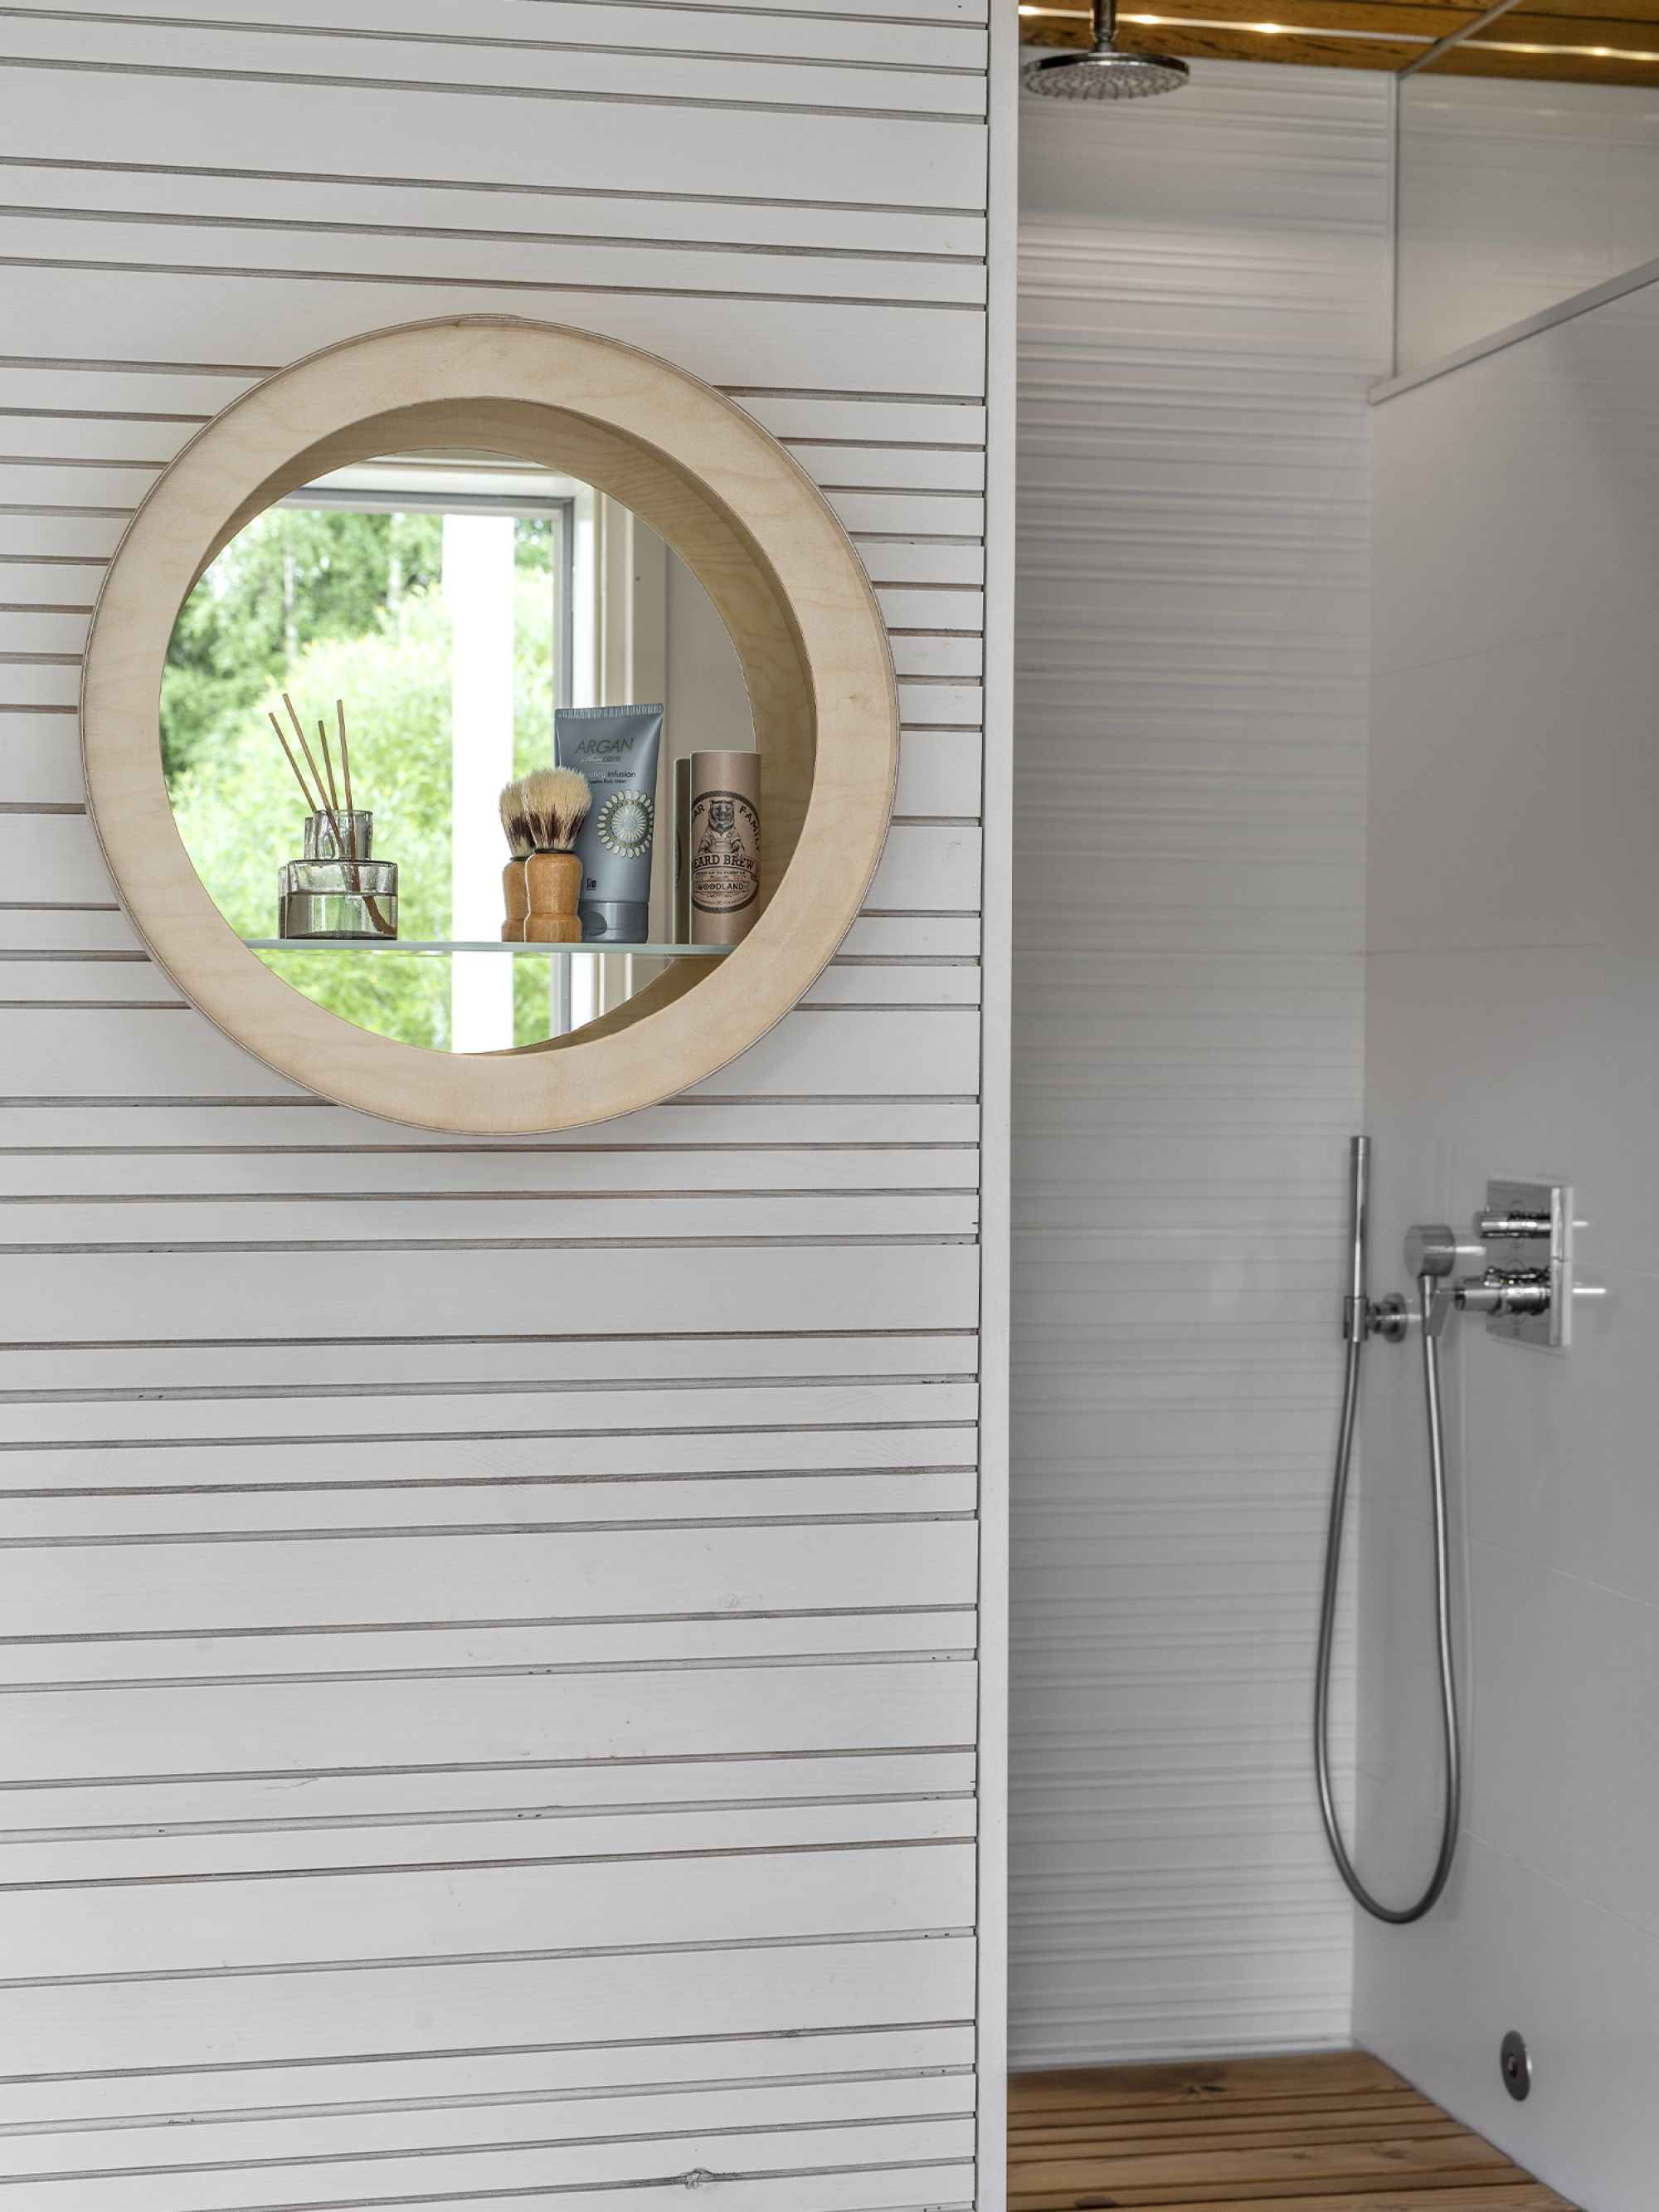 Special wooden shelf with mirror